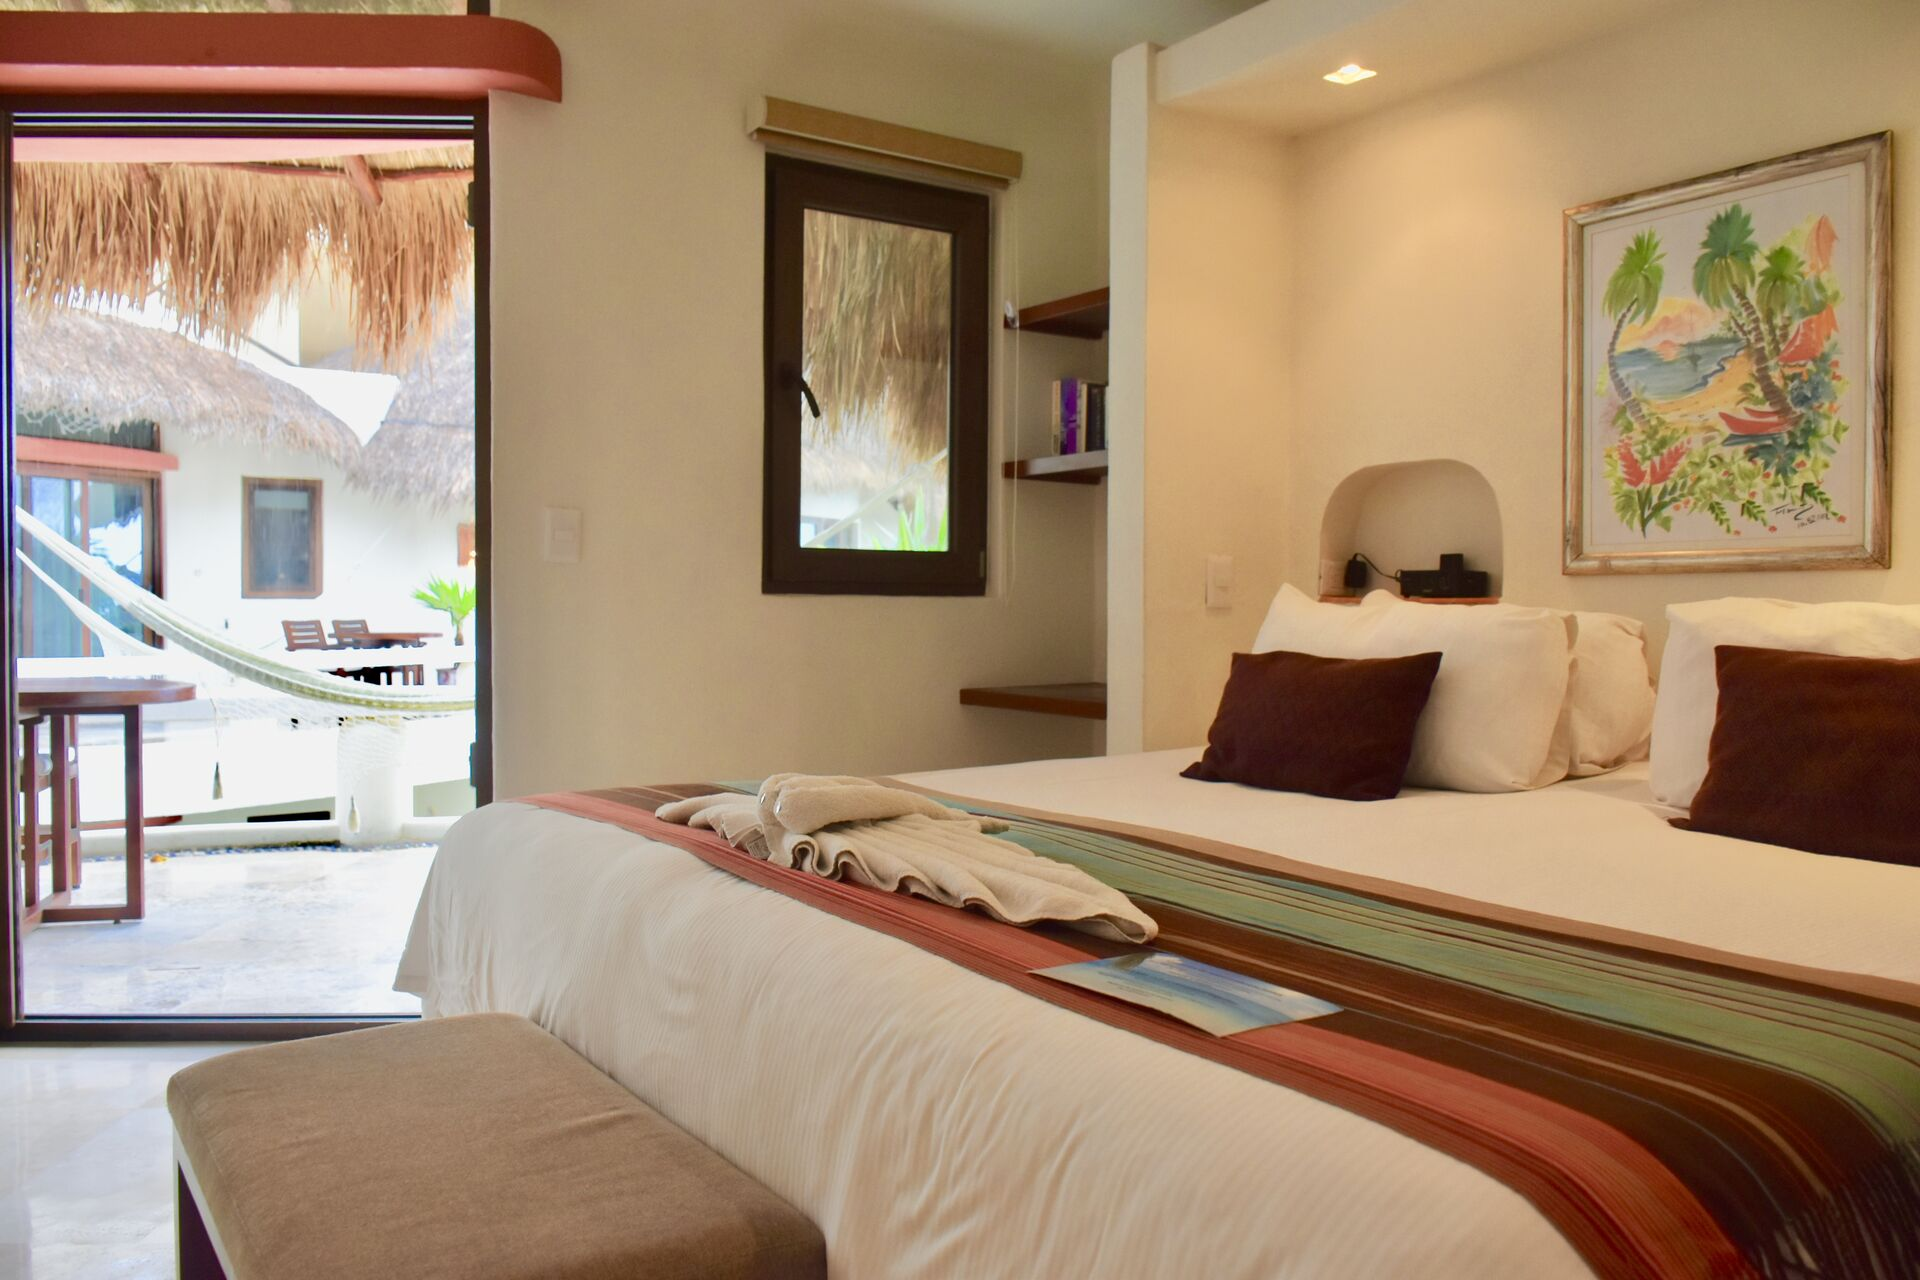 King size bed room with large balcony.